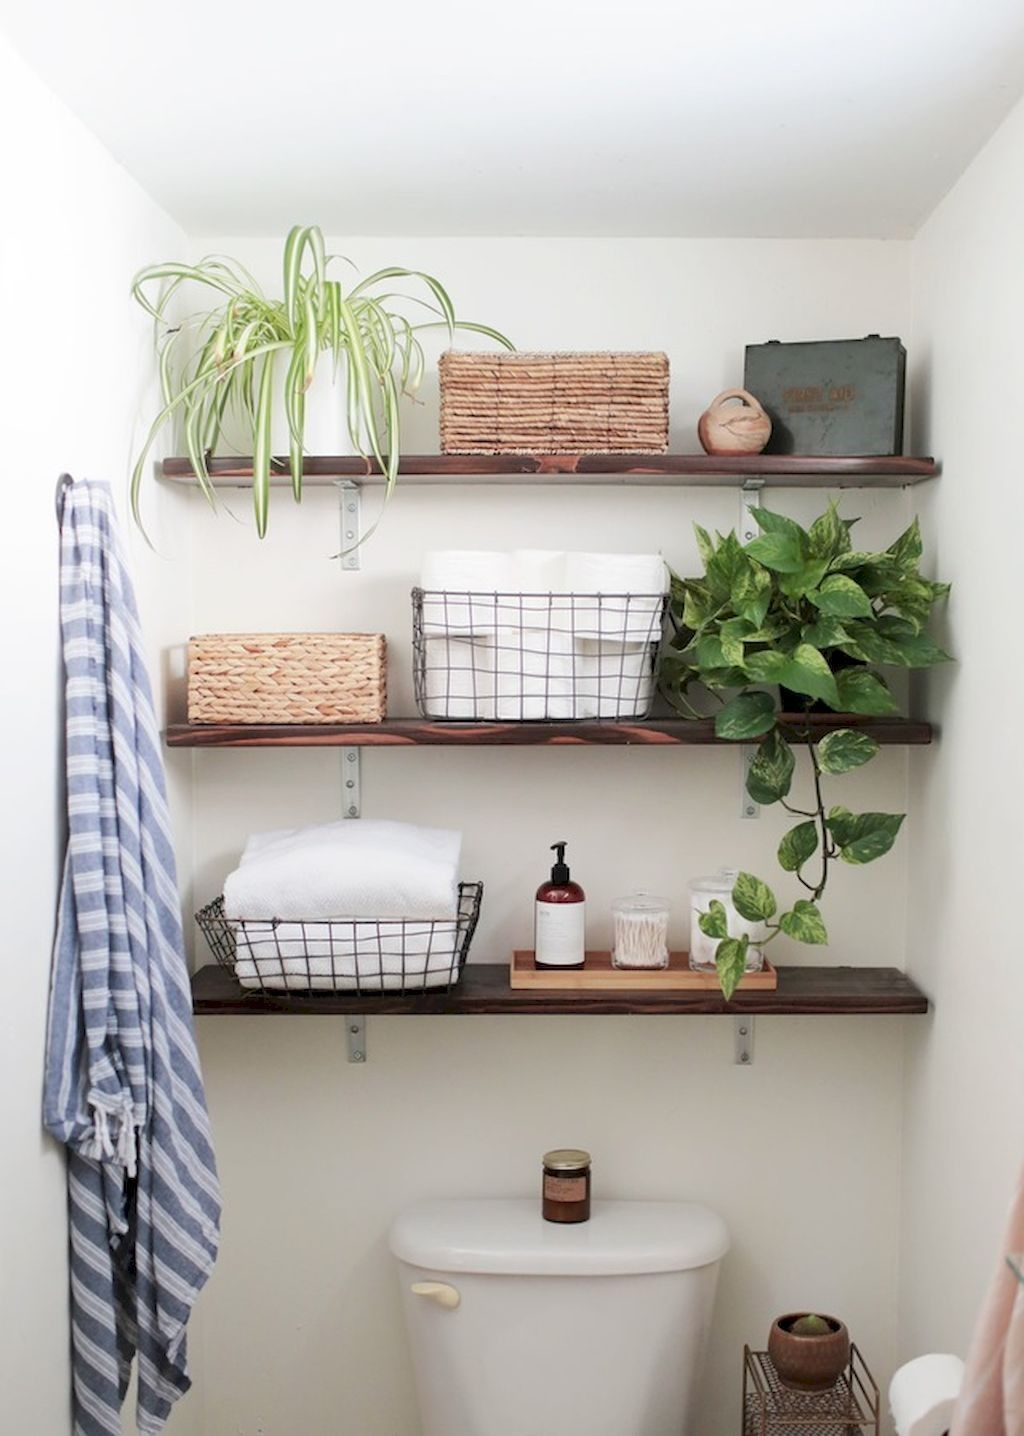 Smart Storage Ideas For Small Apartment Spaces #smartstorage ...